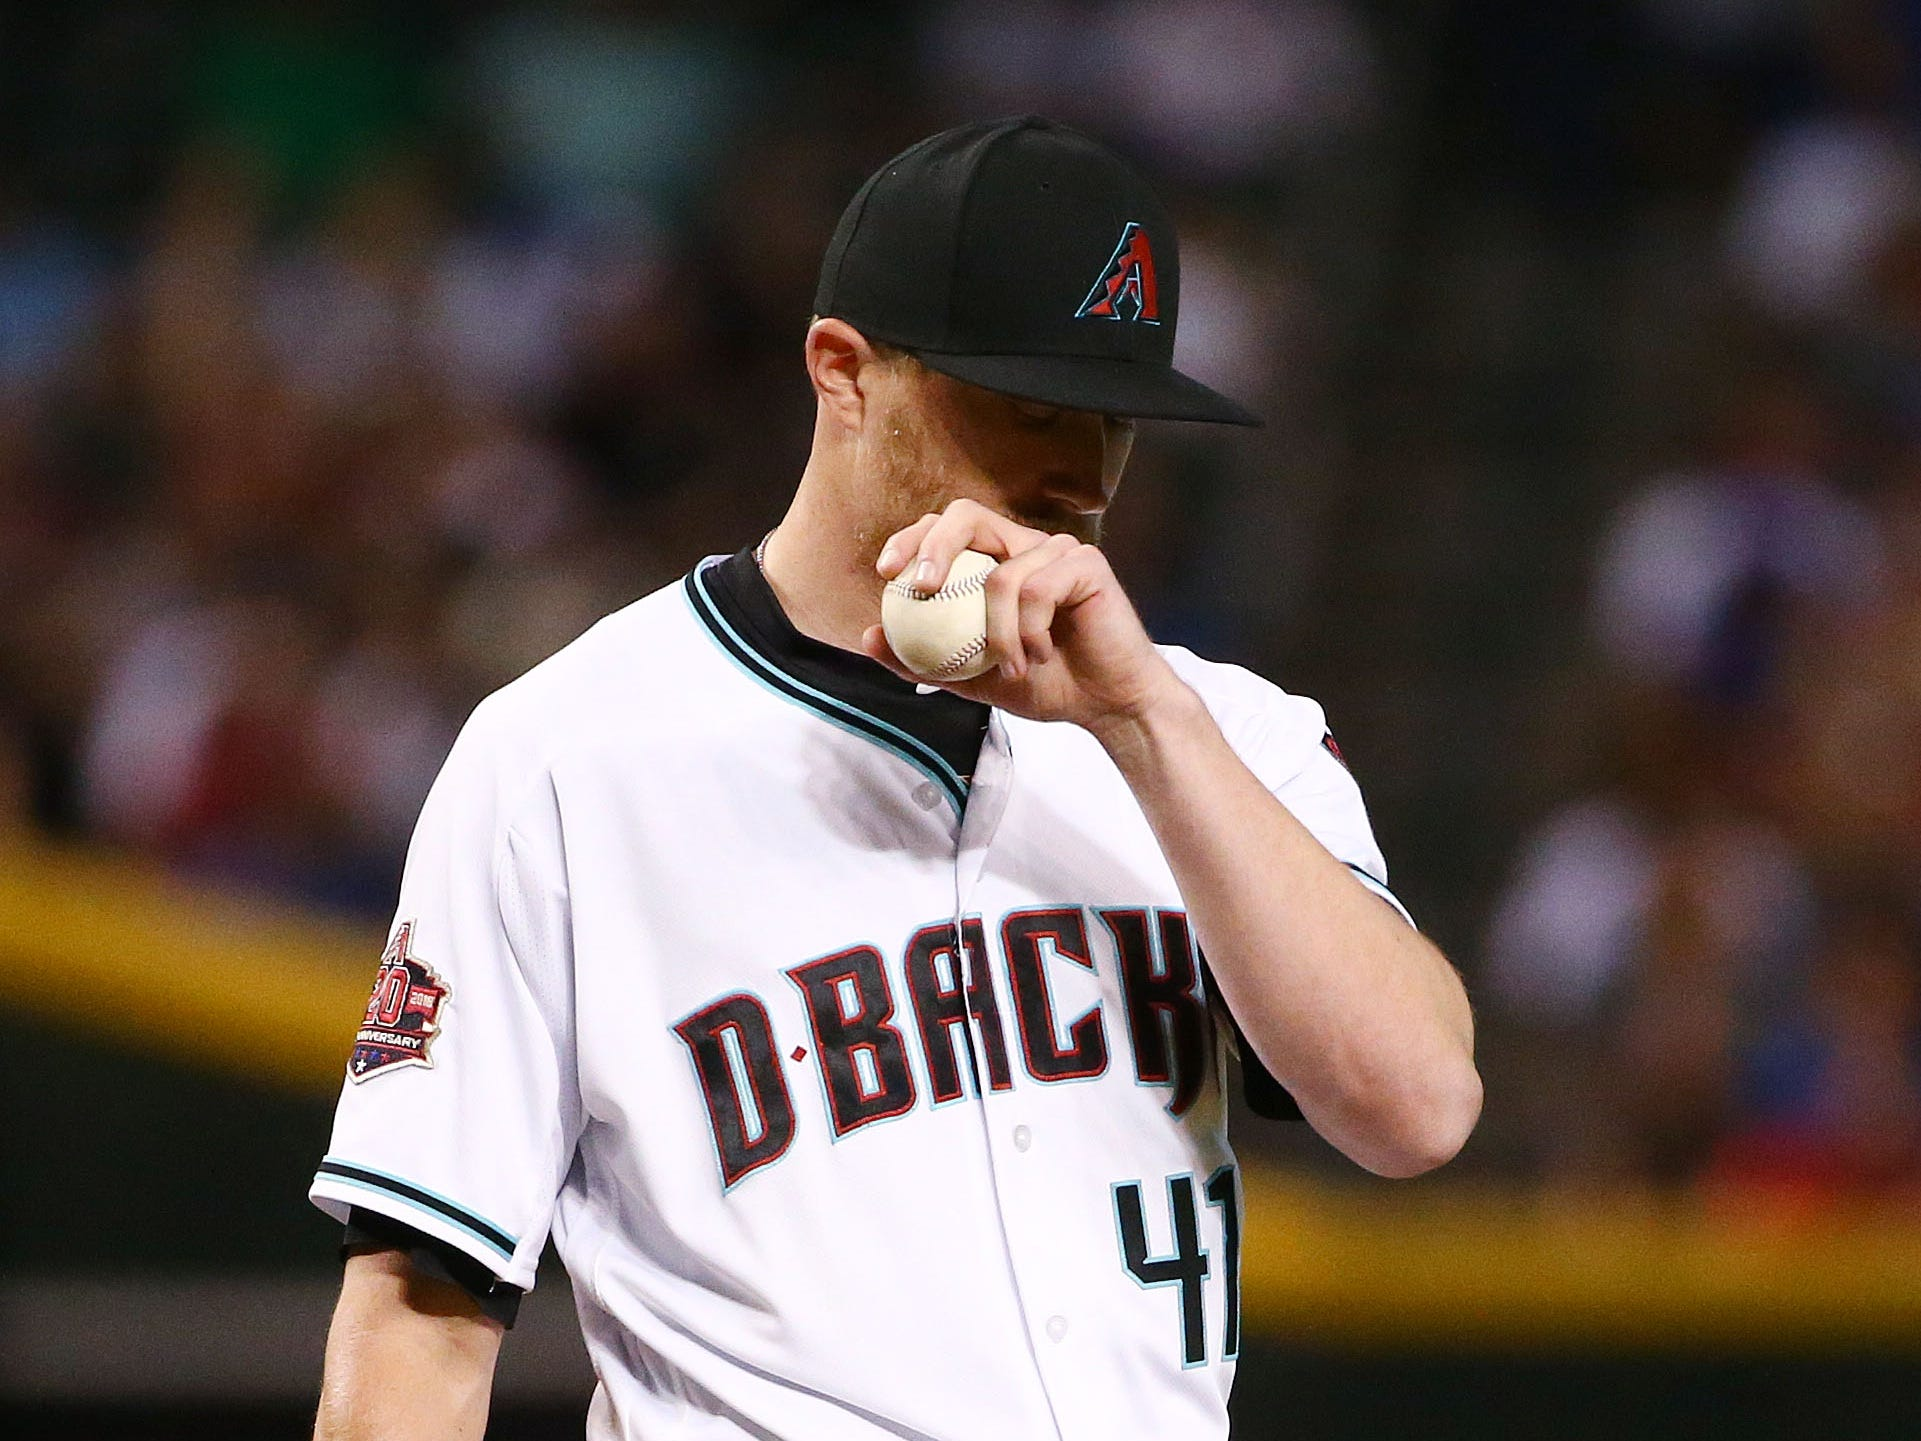 Arizona Diamondbacks pitcher Jake Diekman reacts against the Chicago Cubs in the fifth inning on Sep. 18, 2018, at Chase Field in Phoenix, Ariz.